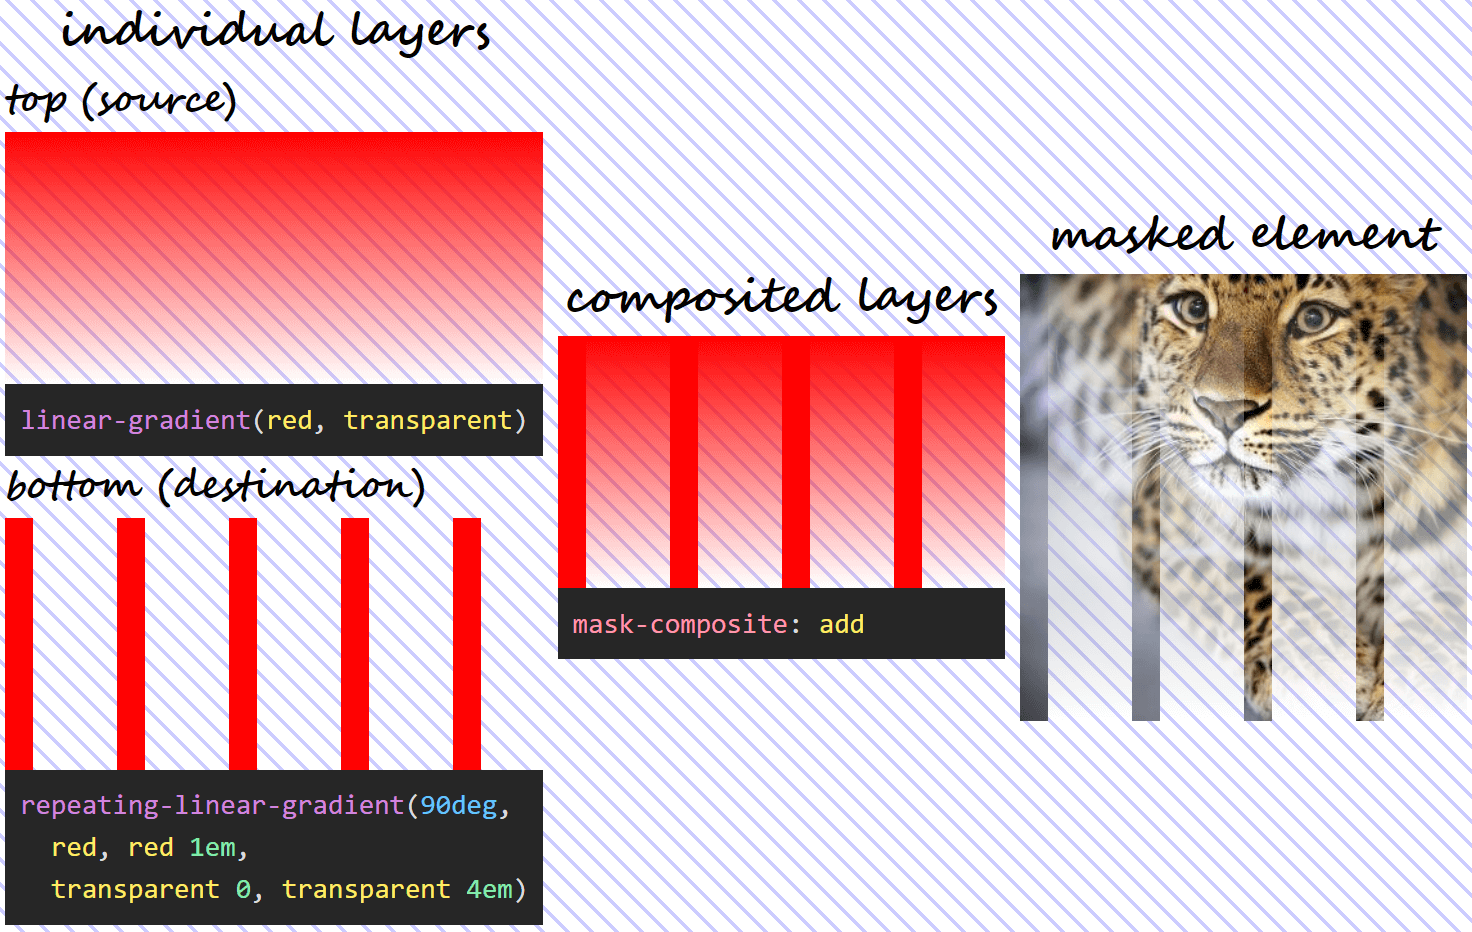 Three column illustration of mask-composite: add in action. On the first column, we have the individual gradient layers (both the visual results and the generating code). On the second column, we can see what the layer resulting as a result of compositing using the add operation looks like. And on the third column, we see this resulting mask layer applied on an image of an Amur leopard. Wherever either layer is fully opaque, our image is fully opaque (not masked out at all). Wherever both layers are fully transparent, our image is fully transparent (completely masked out) as well.